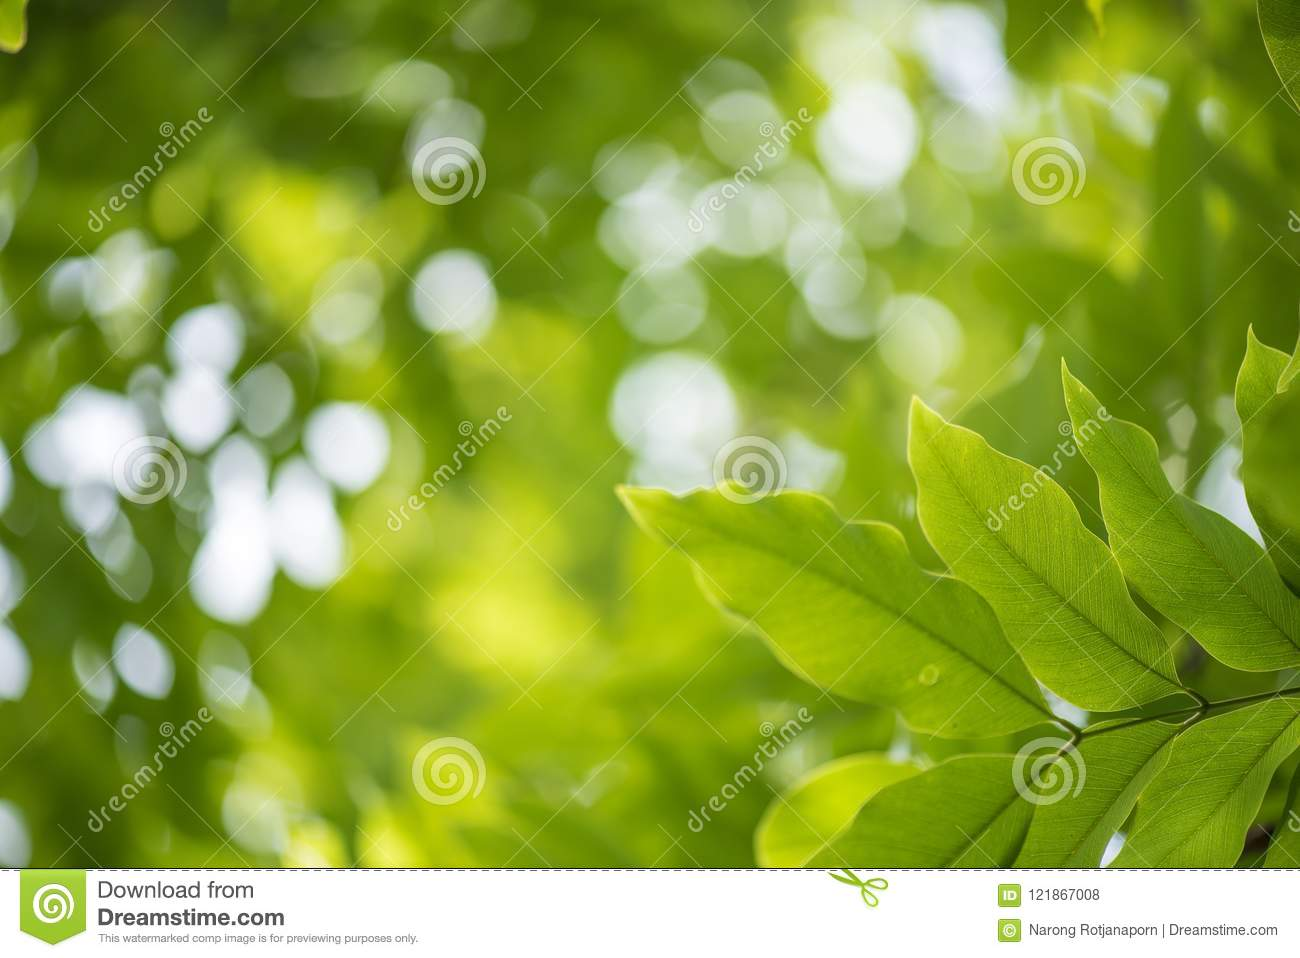 Bokeh Wallpapers High Quality: Abstract Bokeh Nature Background And Beautiful Wallpaper